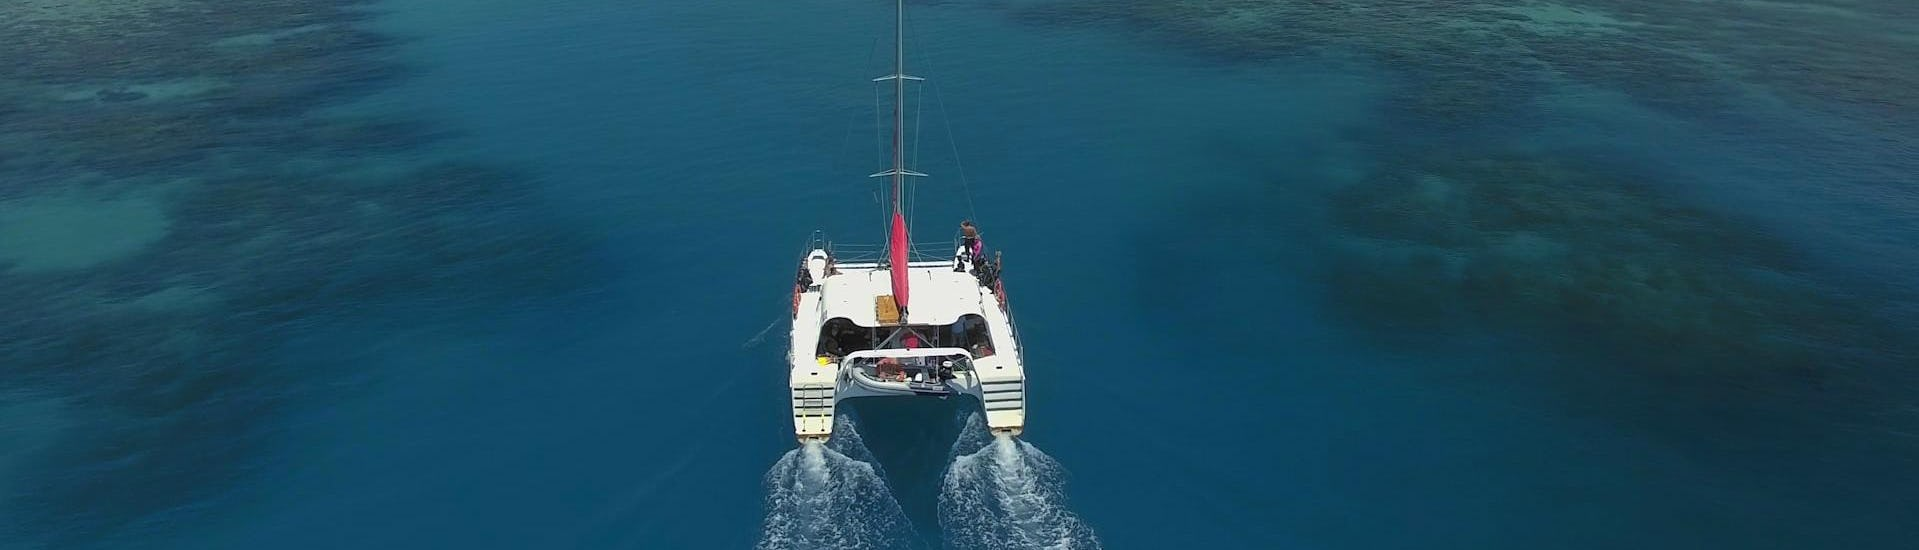 The catamaran Reef Daytripper Cairns is heading towards Upolu Reef during the Great Barrier Reef Diving Trip for Certified Divers.